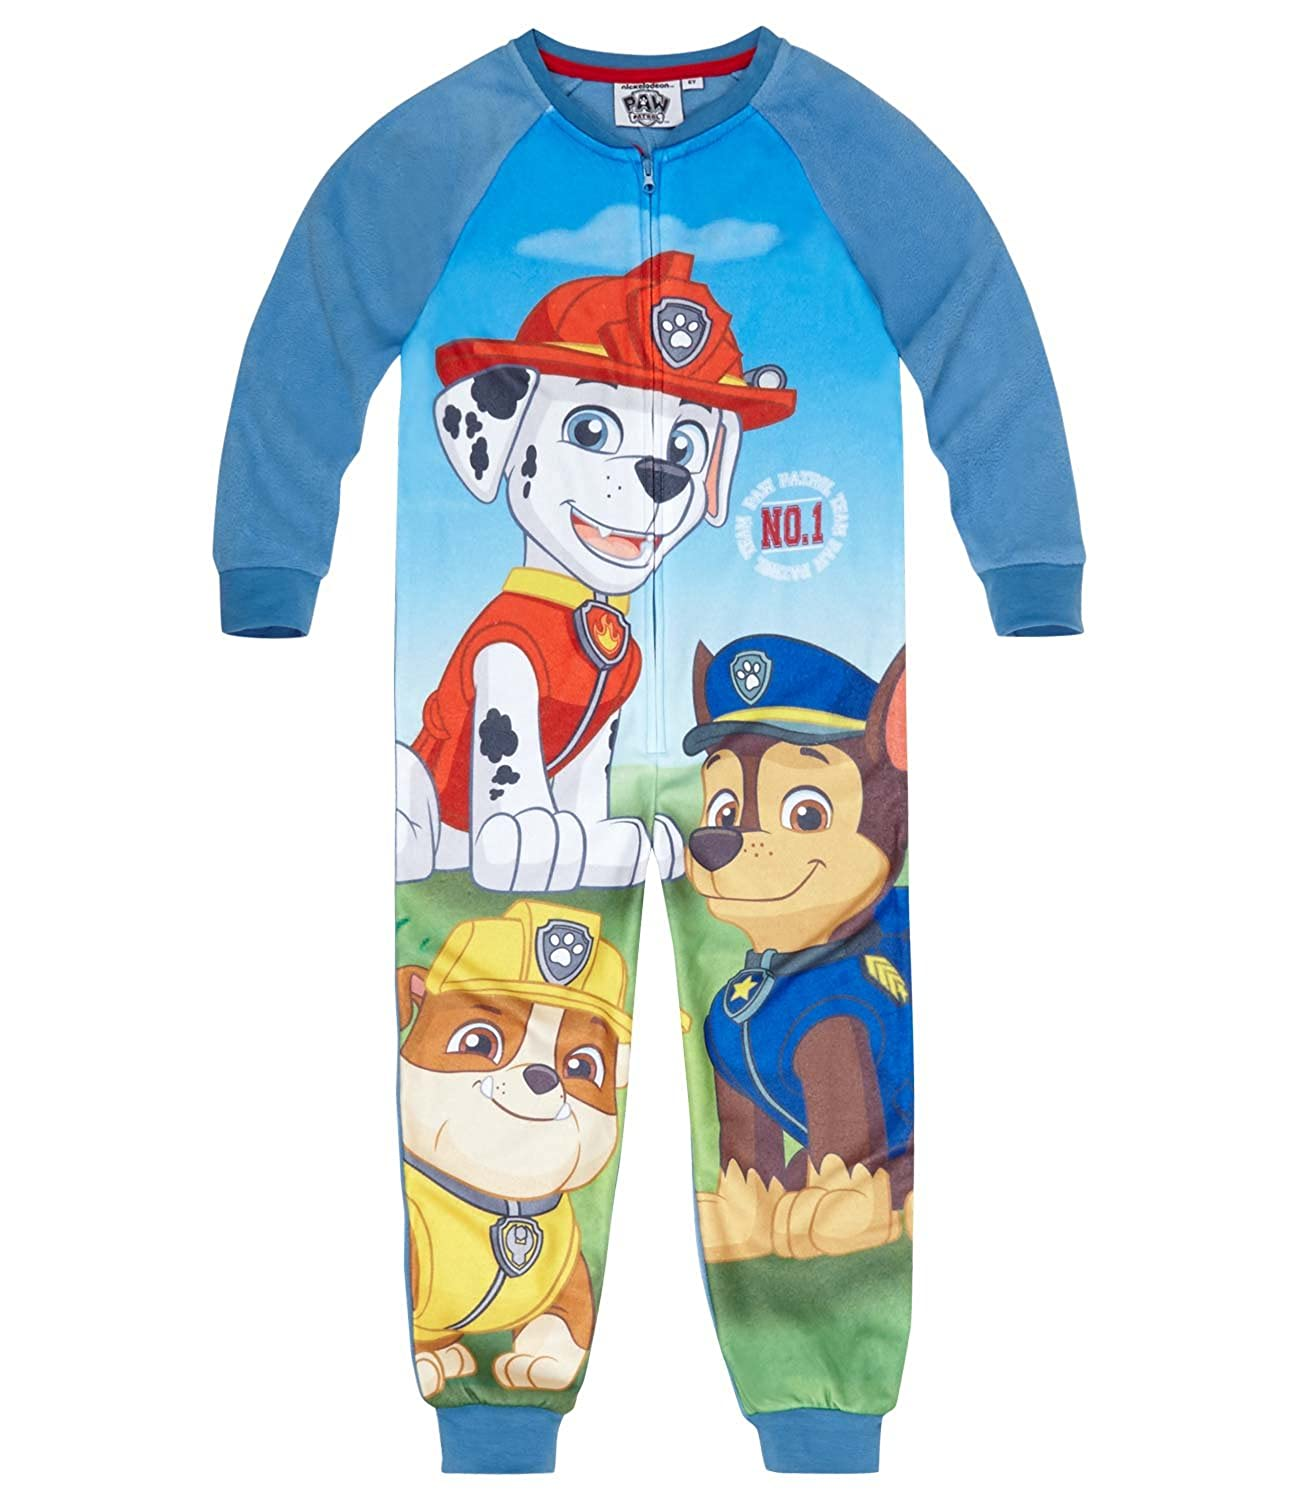 Nickelodeon Boys PAW Patrol Fleece Onesie Sleepsuit